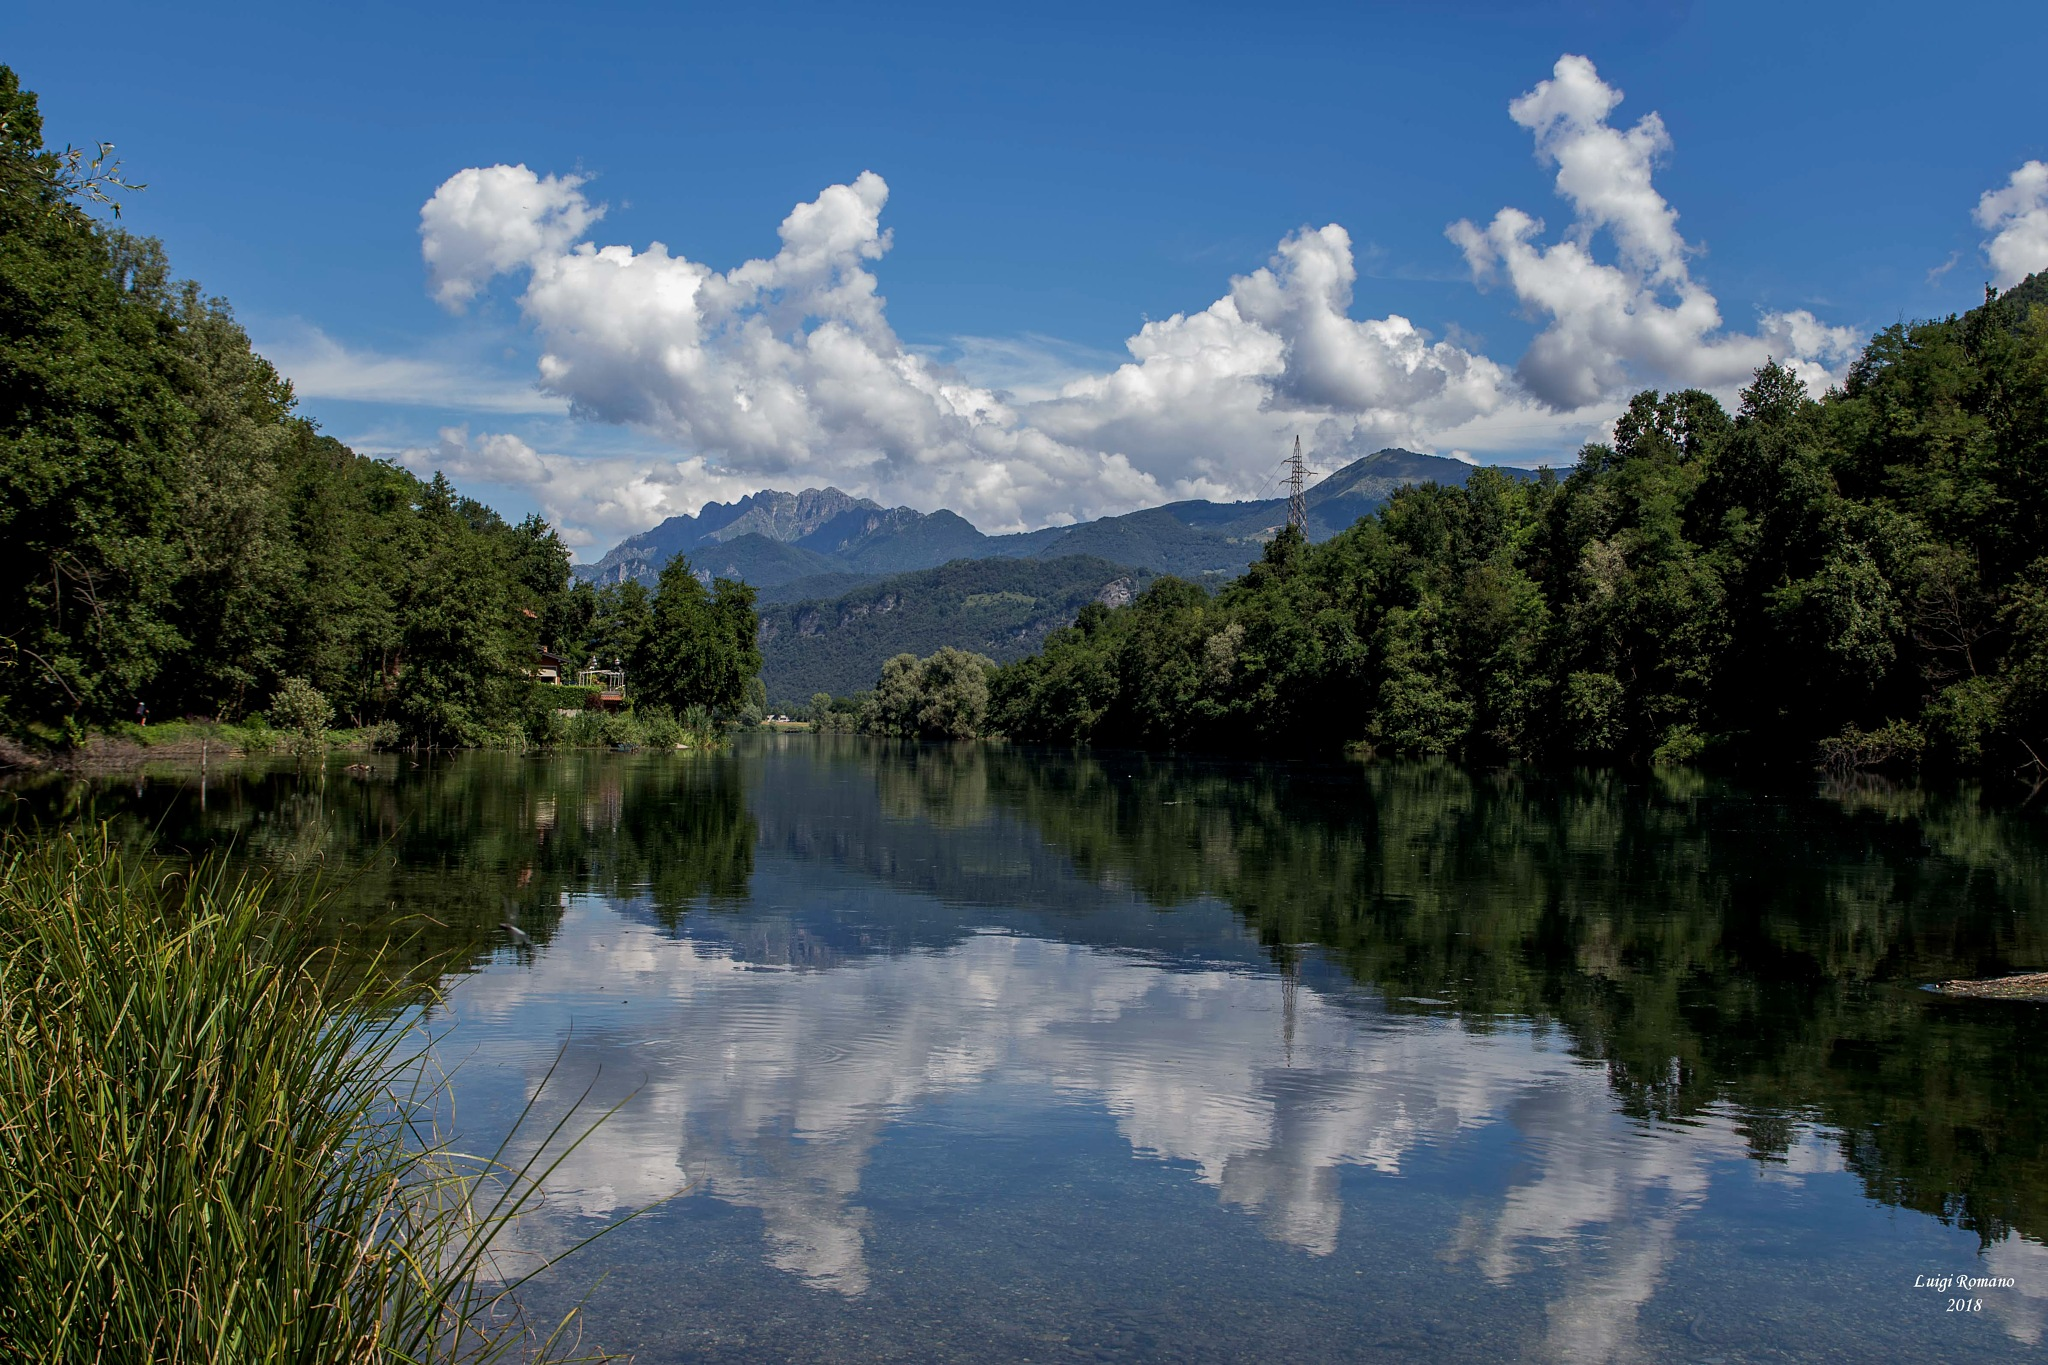 Mount Resegone that is reflected in the Adda River by Luigi Romano